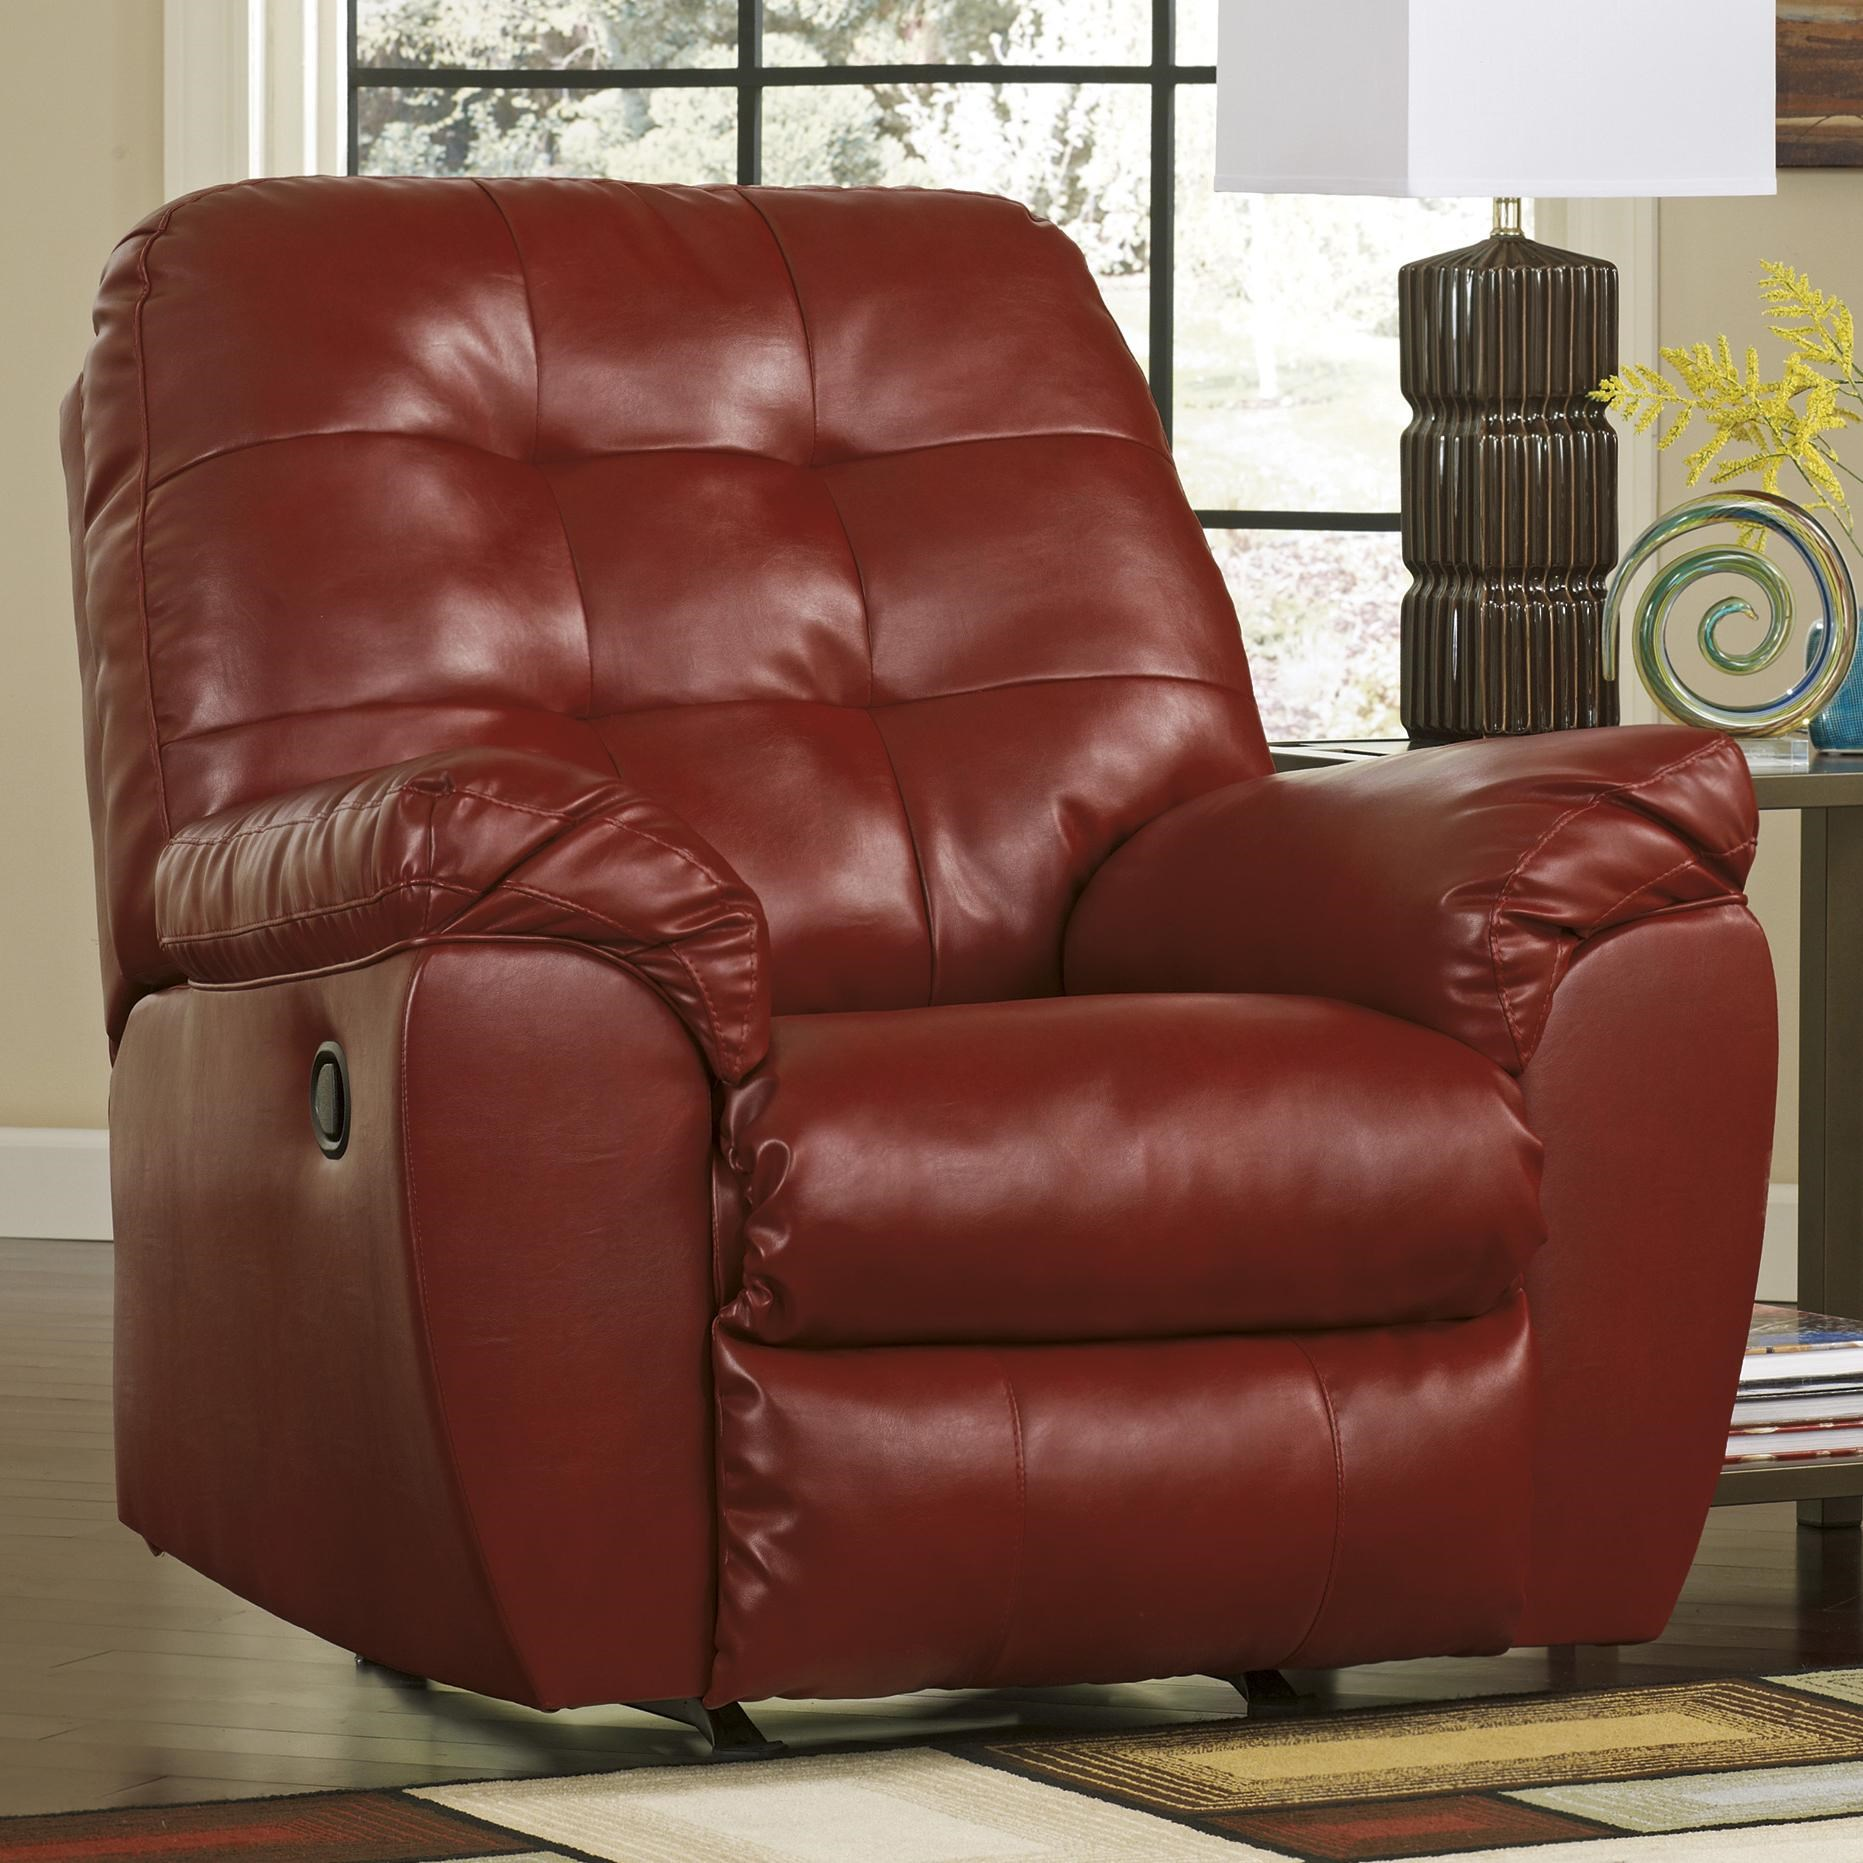 Recliner Pillow Alliston Durablend Salsa Rocker Recliner W Pillow Arms By Ashley Signature Design At Rooms And Rest